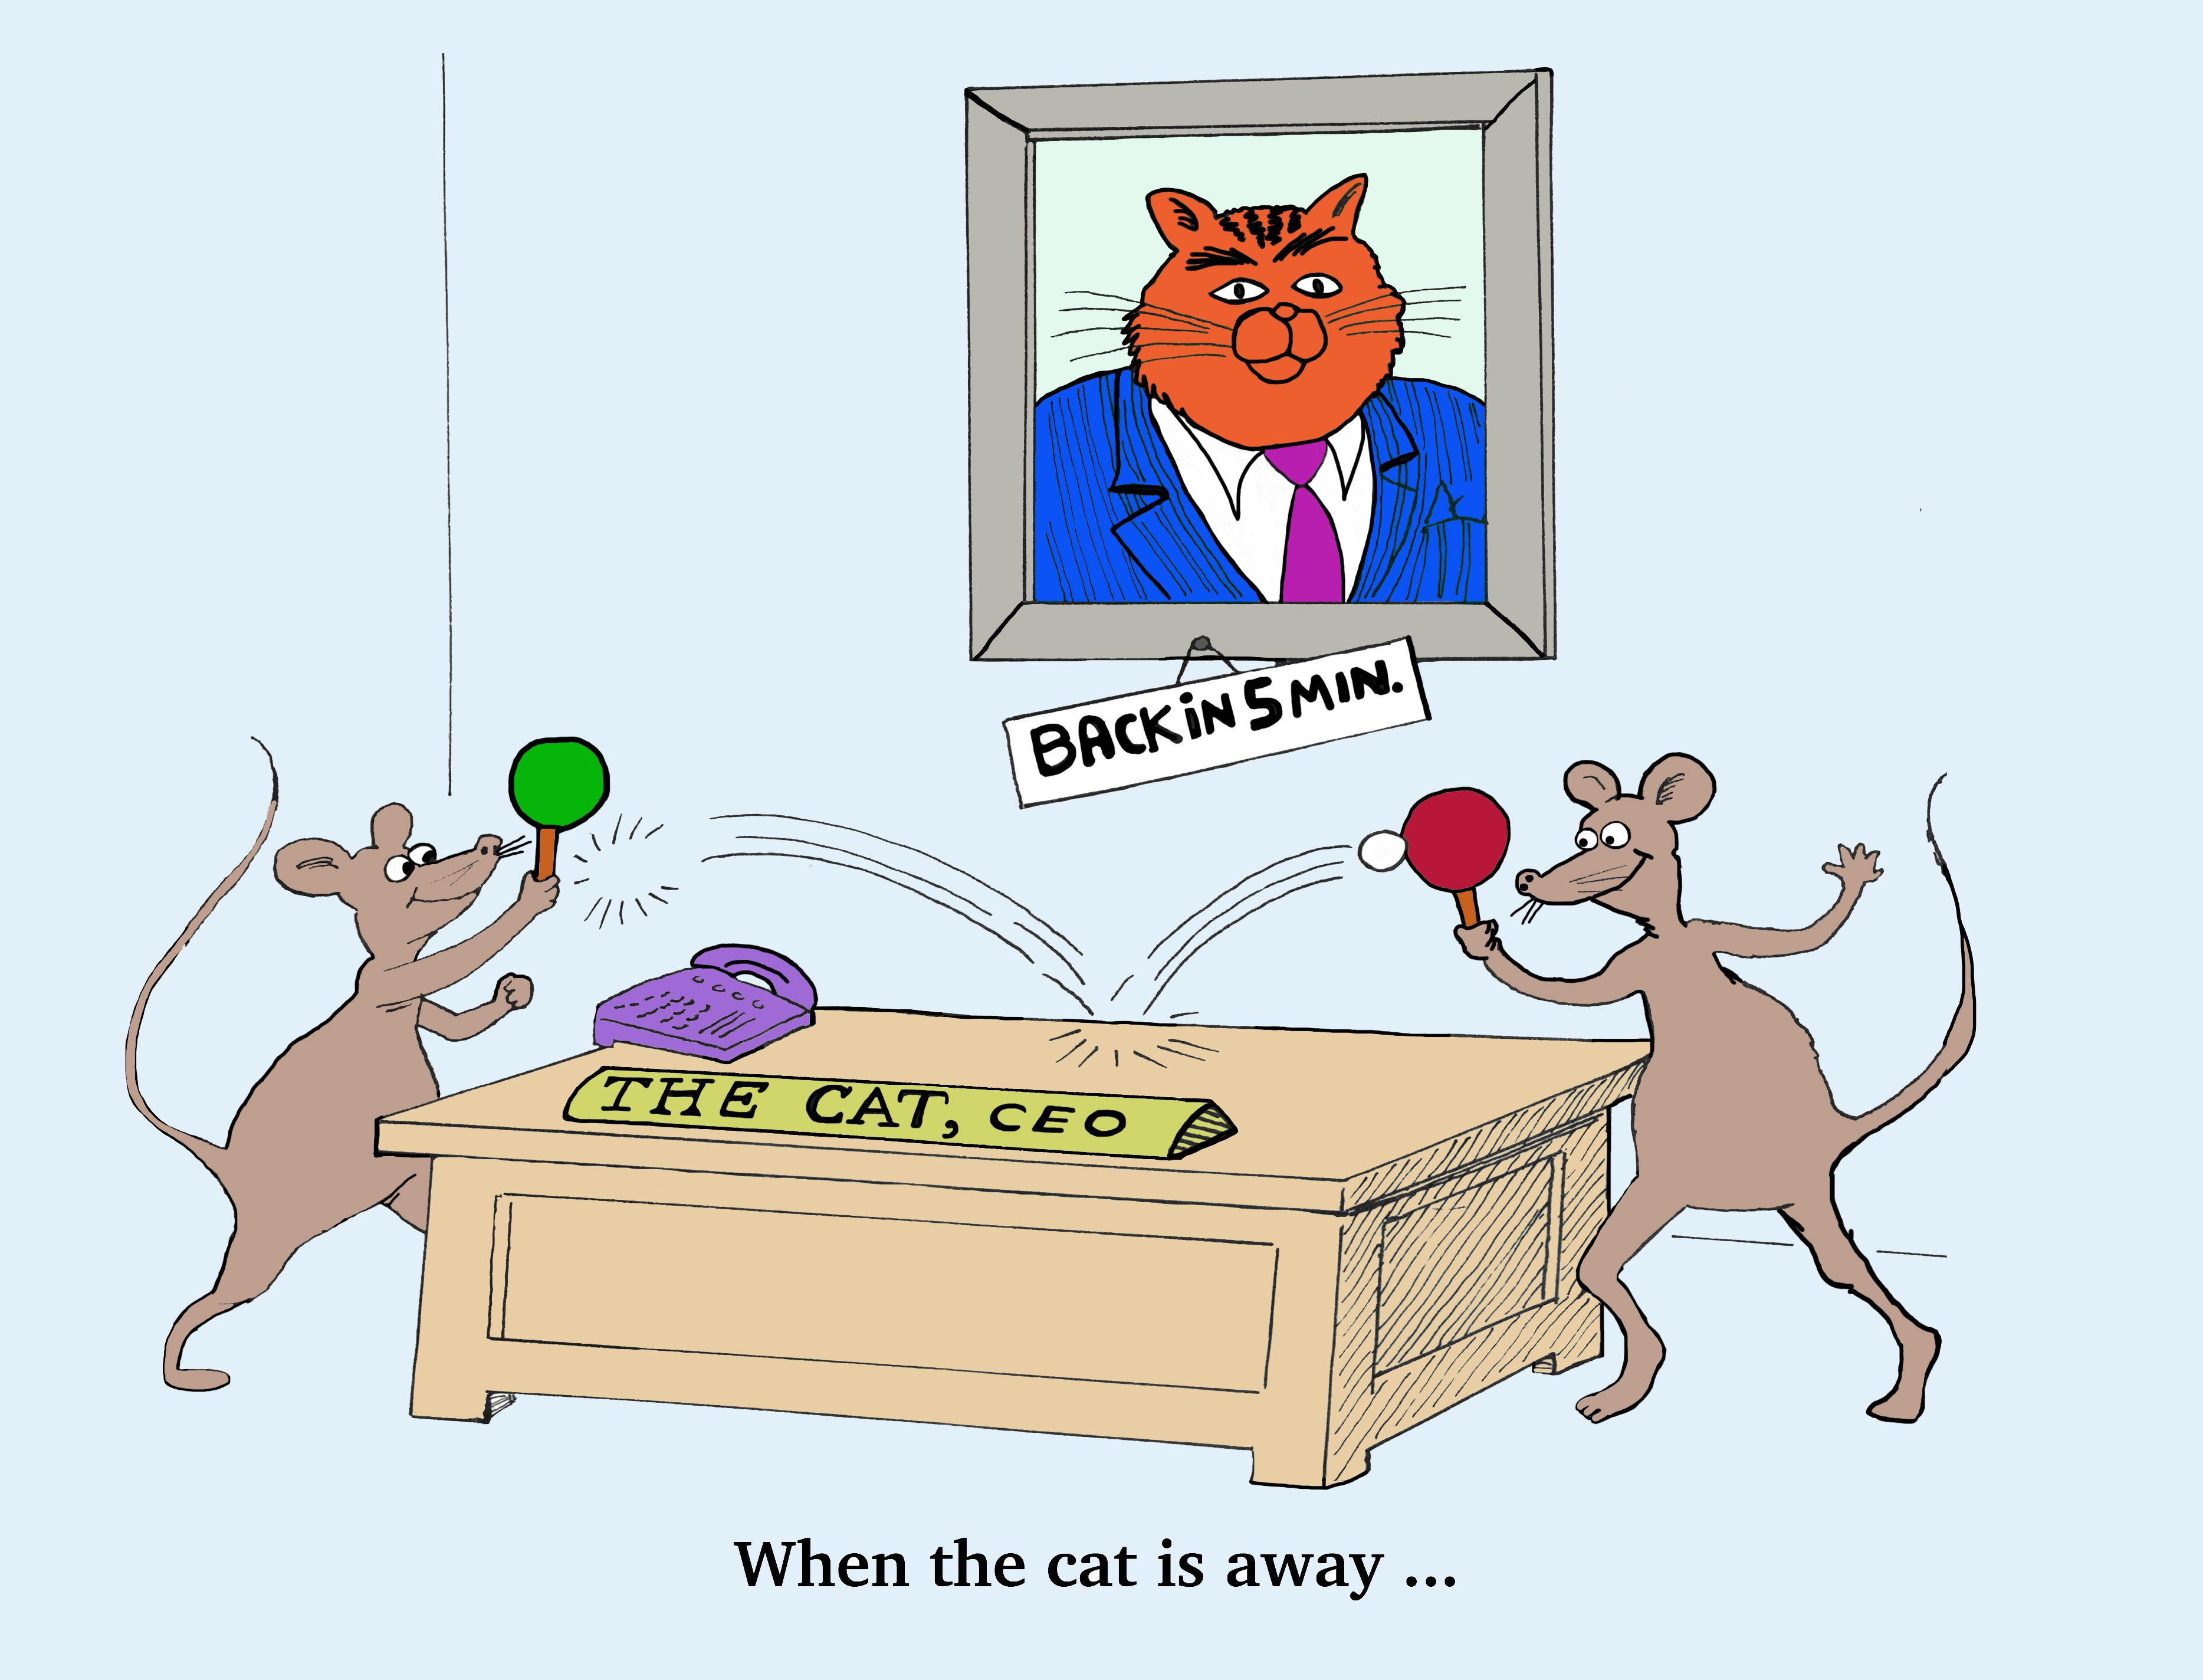 Business cartoon about corporate culture. When the cat is away, the mice will play.